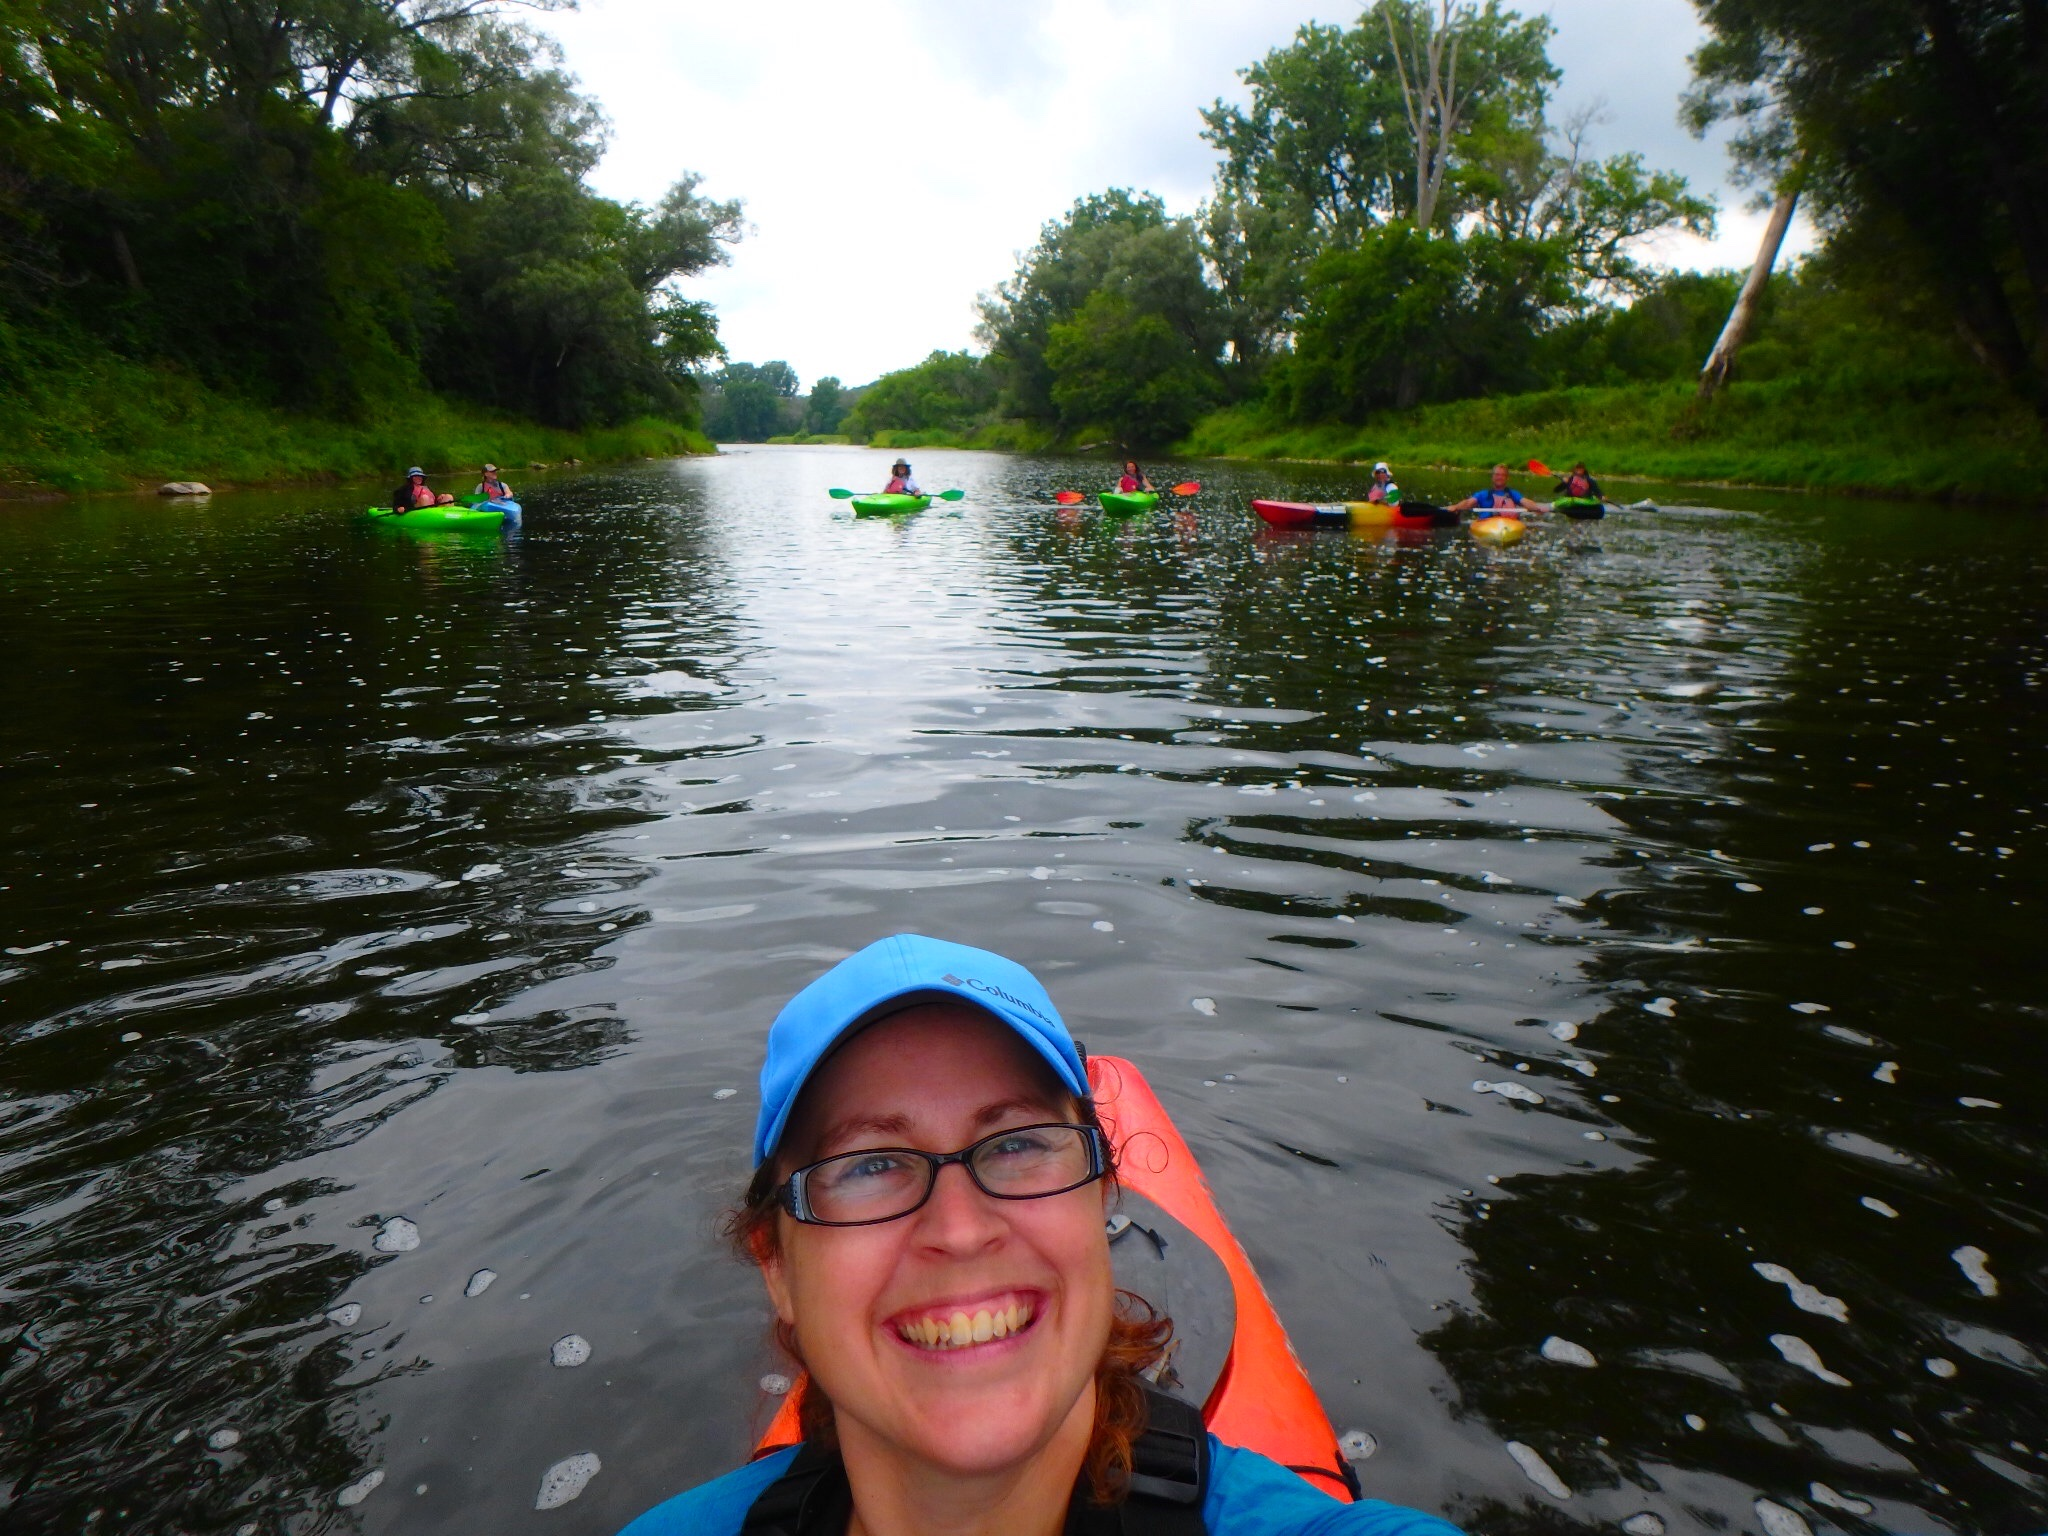 August 1, 2018 - Kayaking, Meditation & Yoga-78